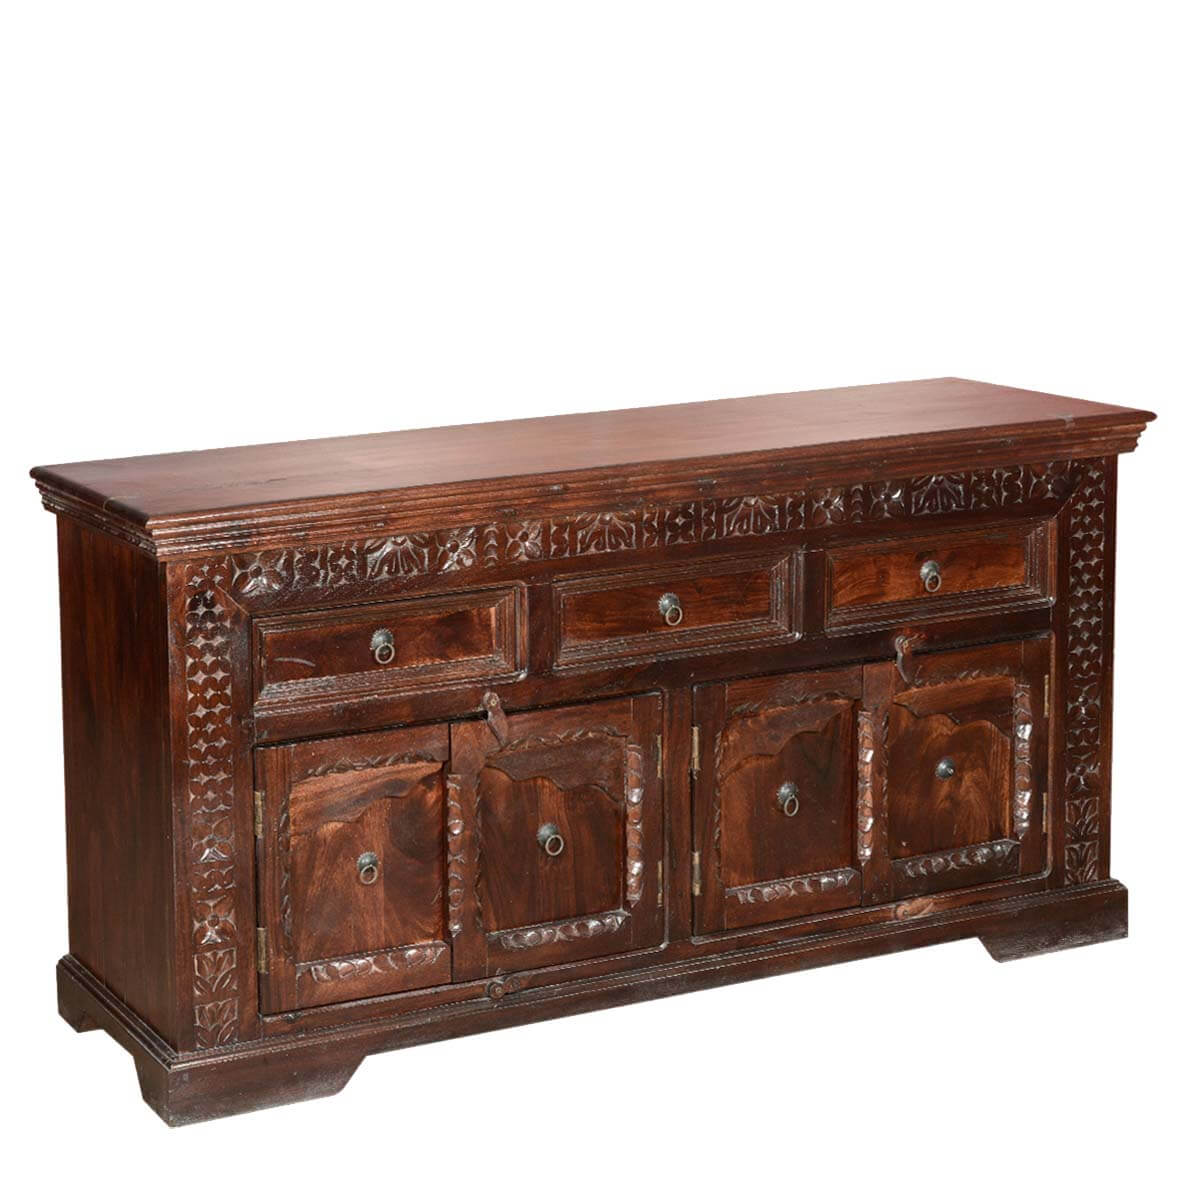 empire rustic solid wood 4 door 3 drawer sideboard. Black Bedroom Furniture Sets. Home Design Ideas